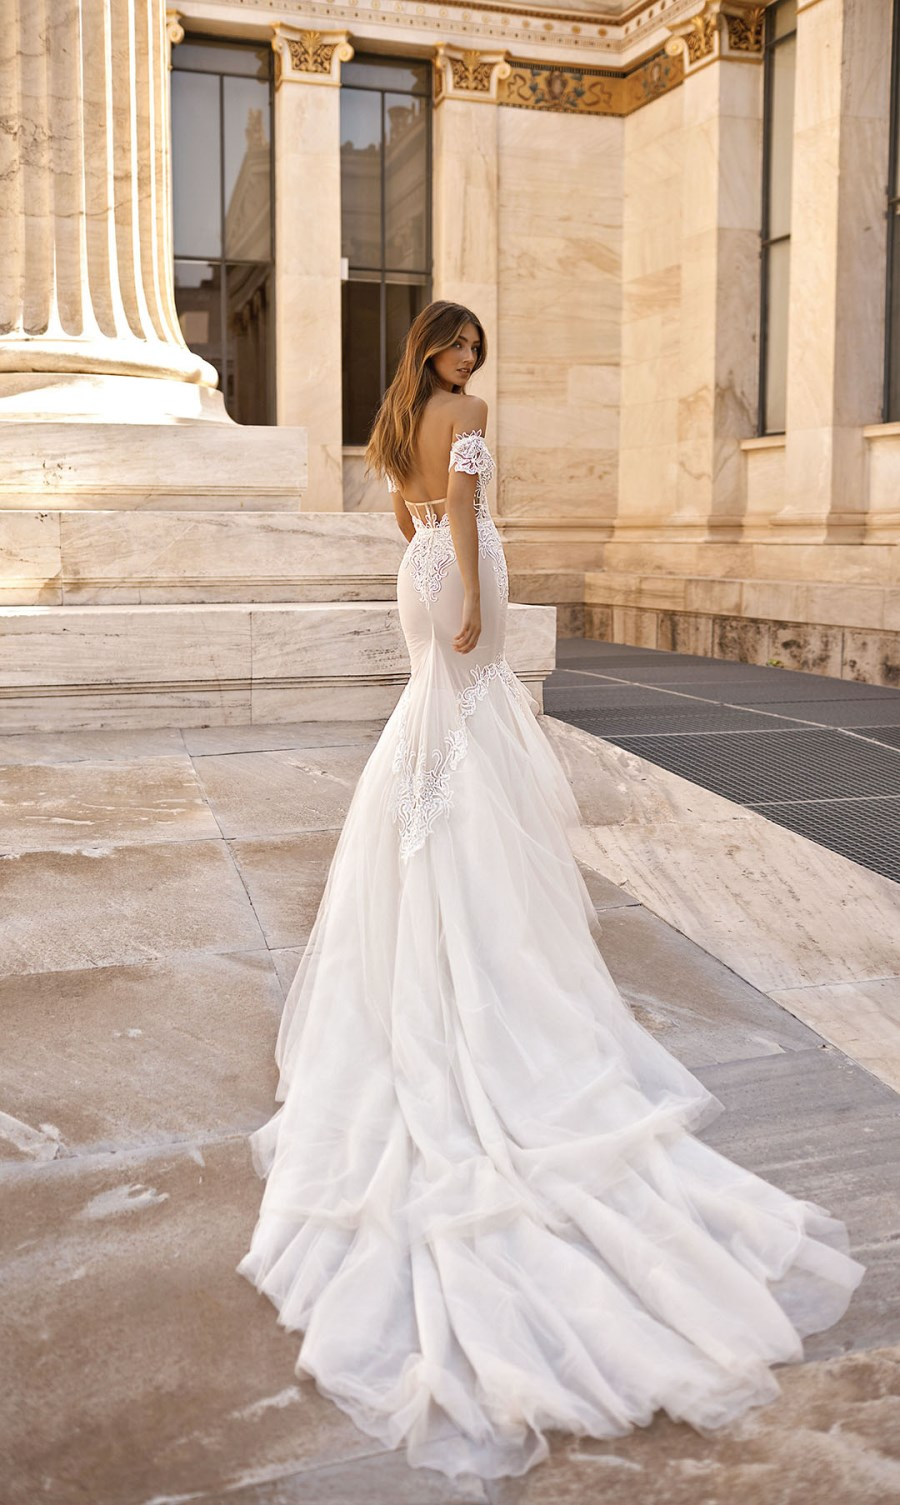 berta-wedding-dress-2019-1 (7)_2